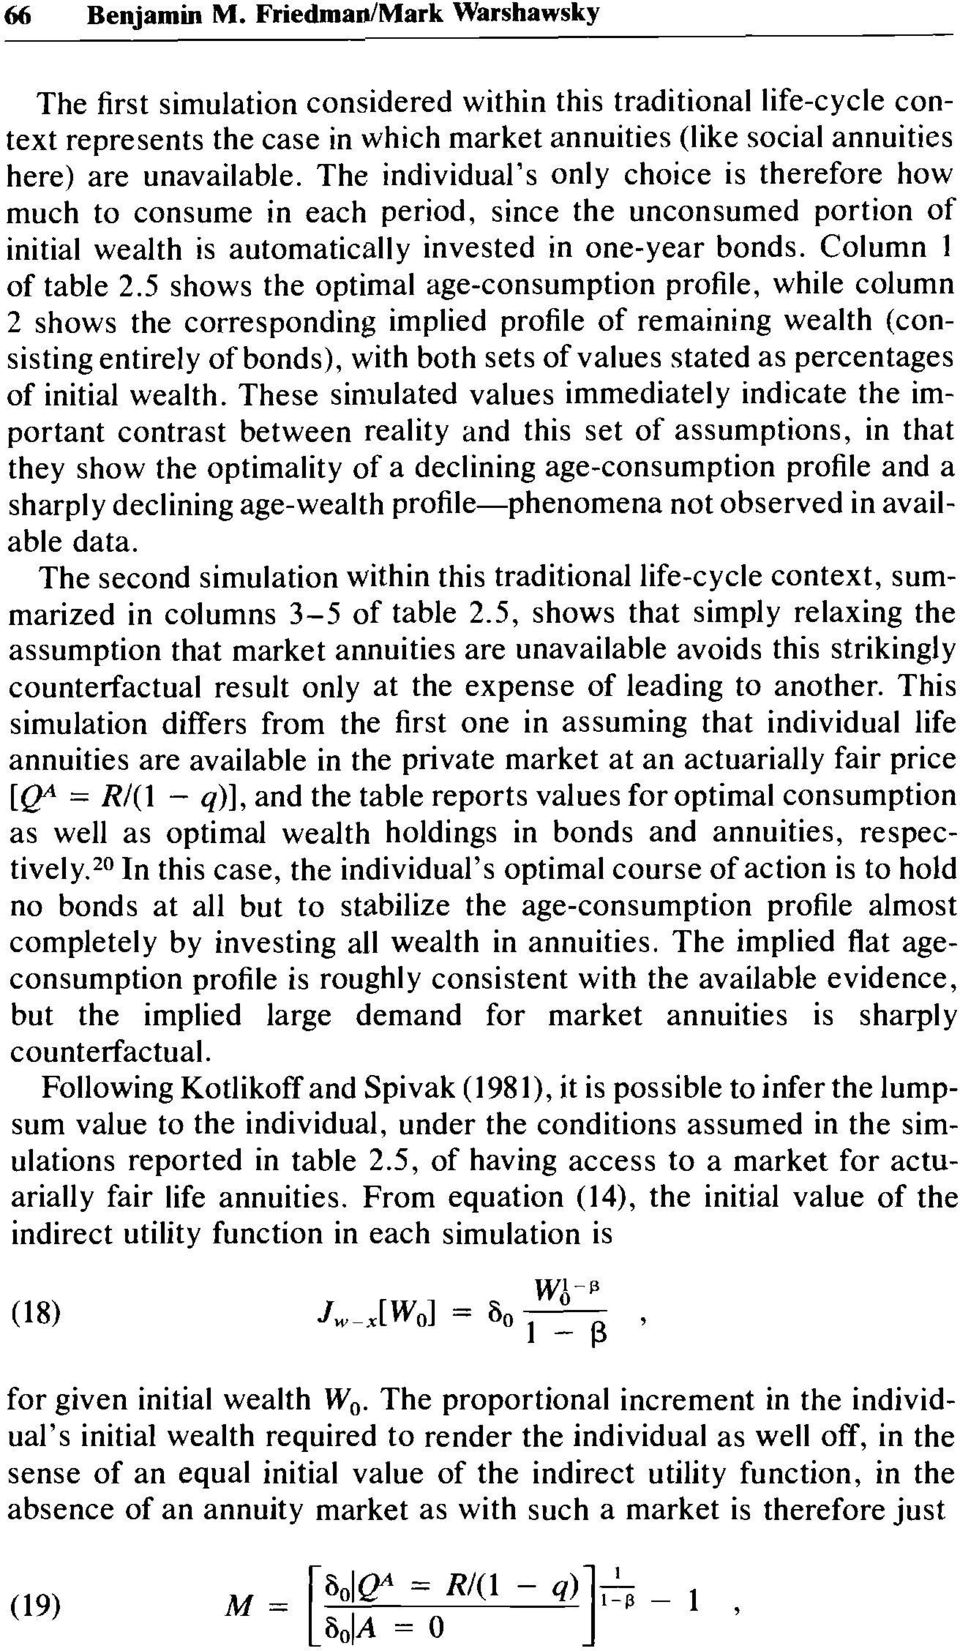 The individual's only choice is therefore how much to consume in each period, since the unconsumed portion of initial wealth is automatically invested in one-year bonds. Column 1 of table 2.